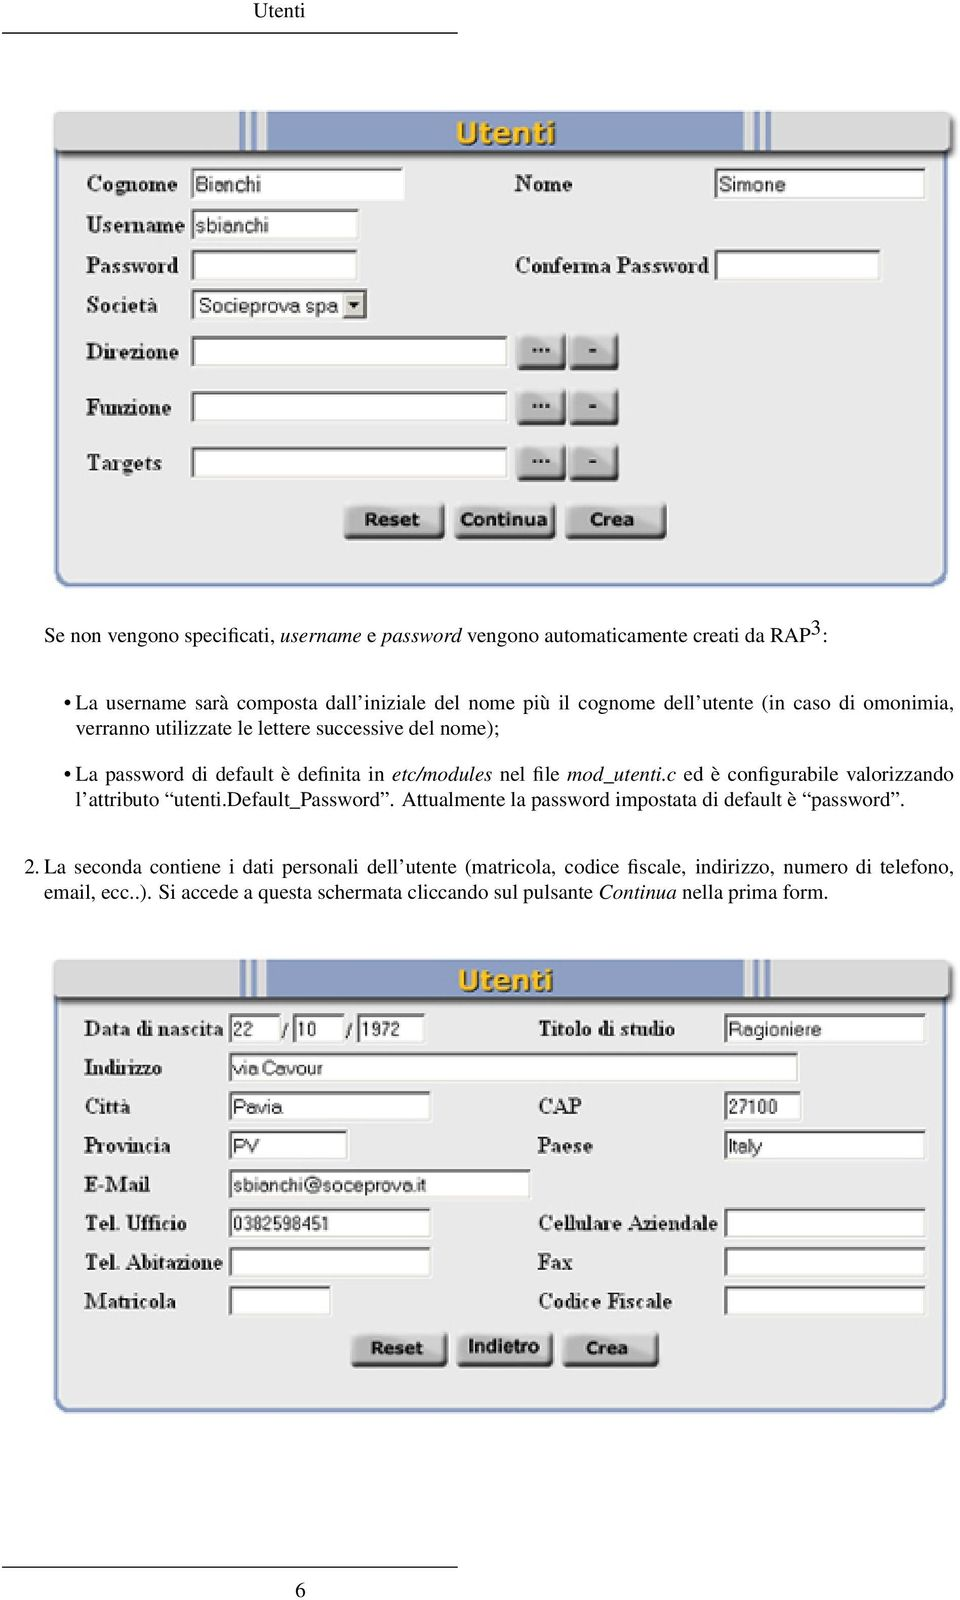 c ed è configurabile valorizzando l attributo utenti.default_password. Attualmente la password impostata di default è password. 2.